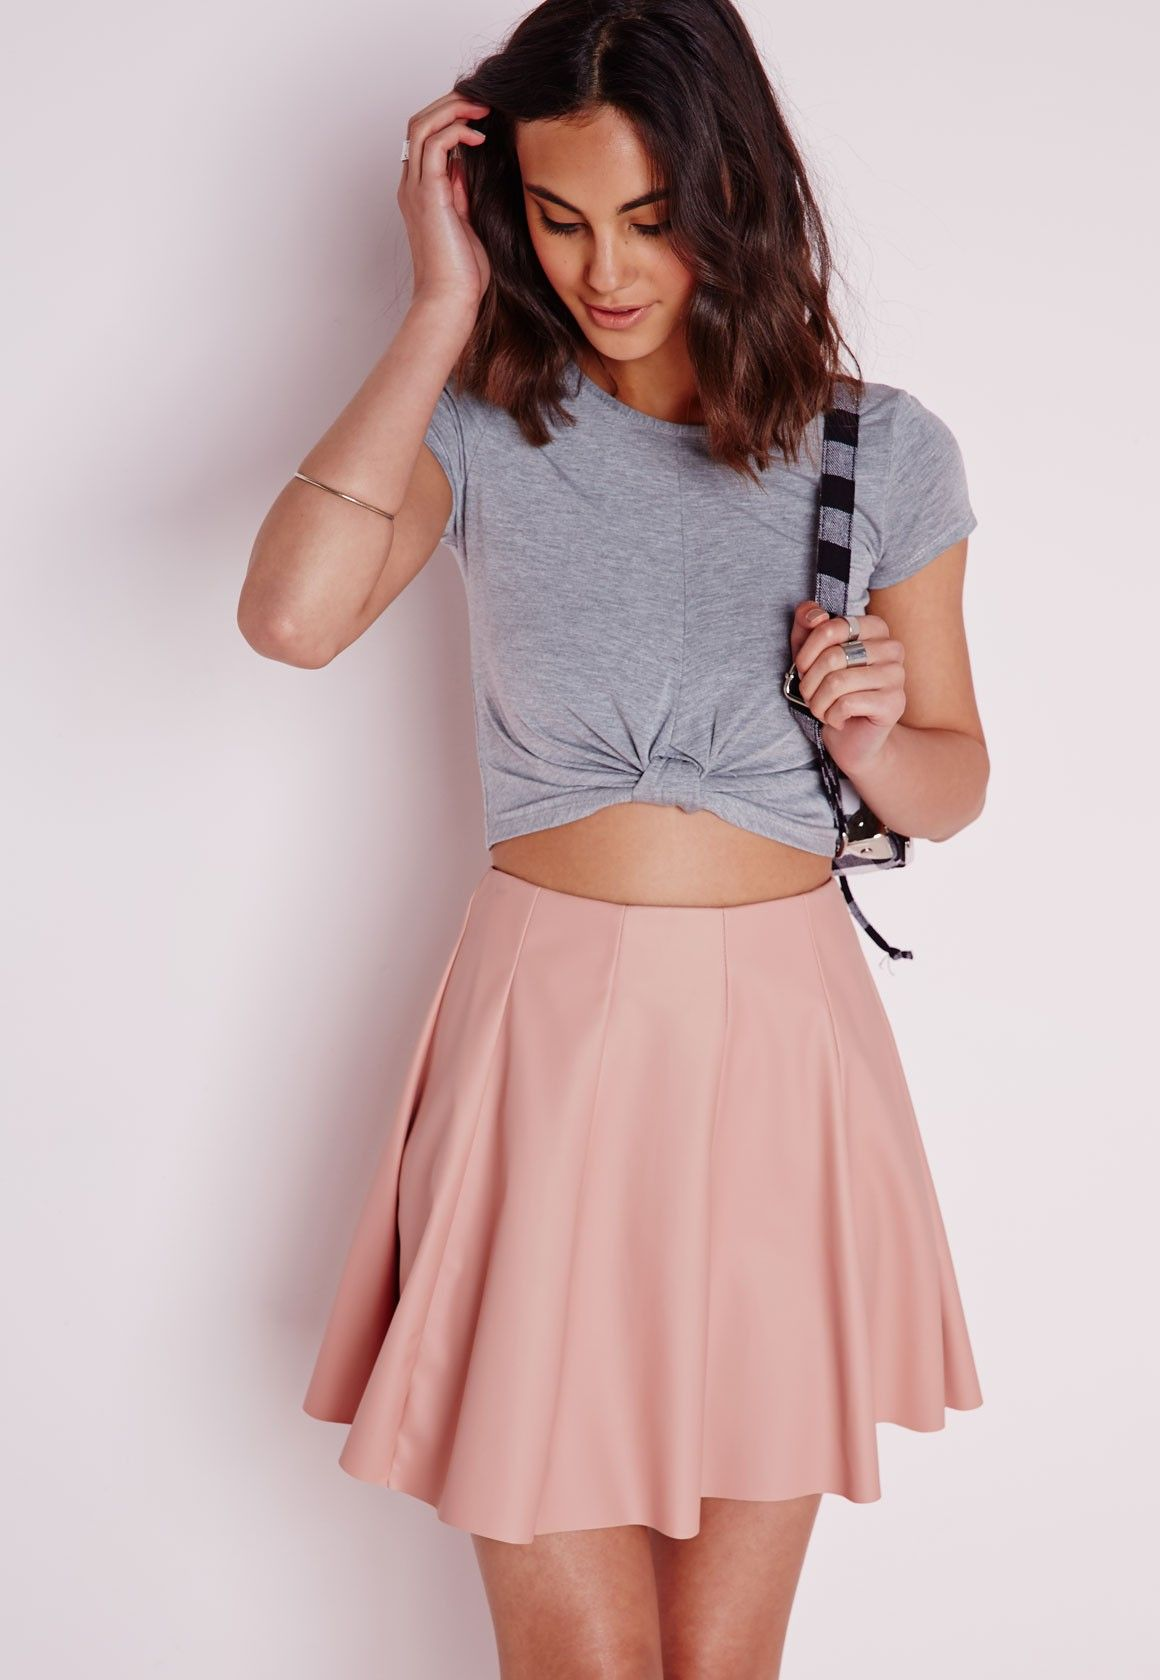 e1642ea8adccb Capped Sleeve Knot Crop Top Grey-4 in 2019 | SLEEVES | Casual tops ...